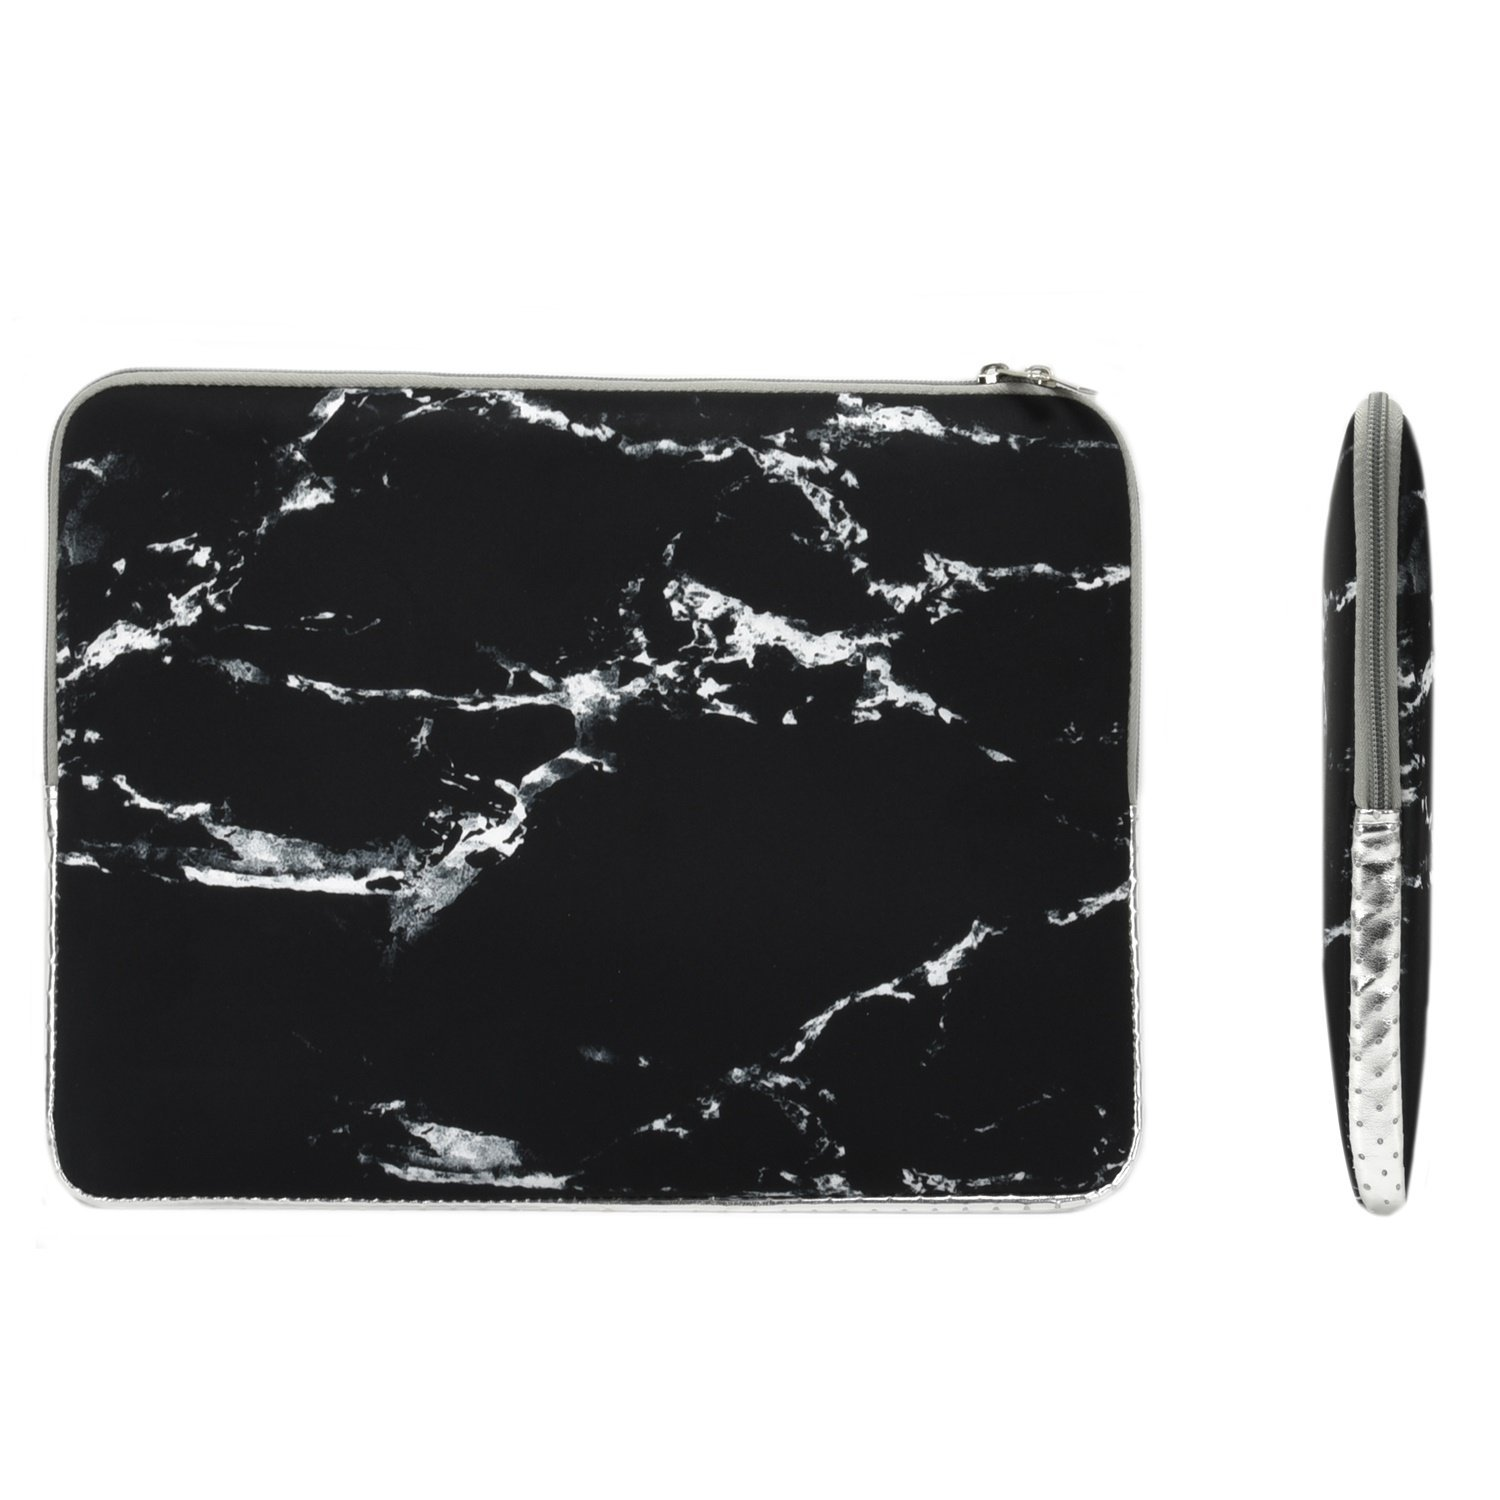 """TOP CASE - Marble Pattern Zipper Sleeve Bag Case for All Laptop 13"""" 13-inch Macbook Pro with or without Retina Display / Macbook Air / Macbook Unibody / Ultrabook / Chromebook - Black"""